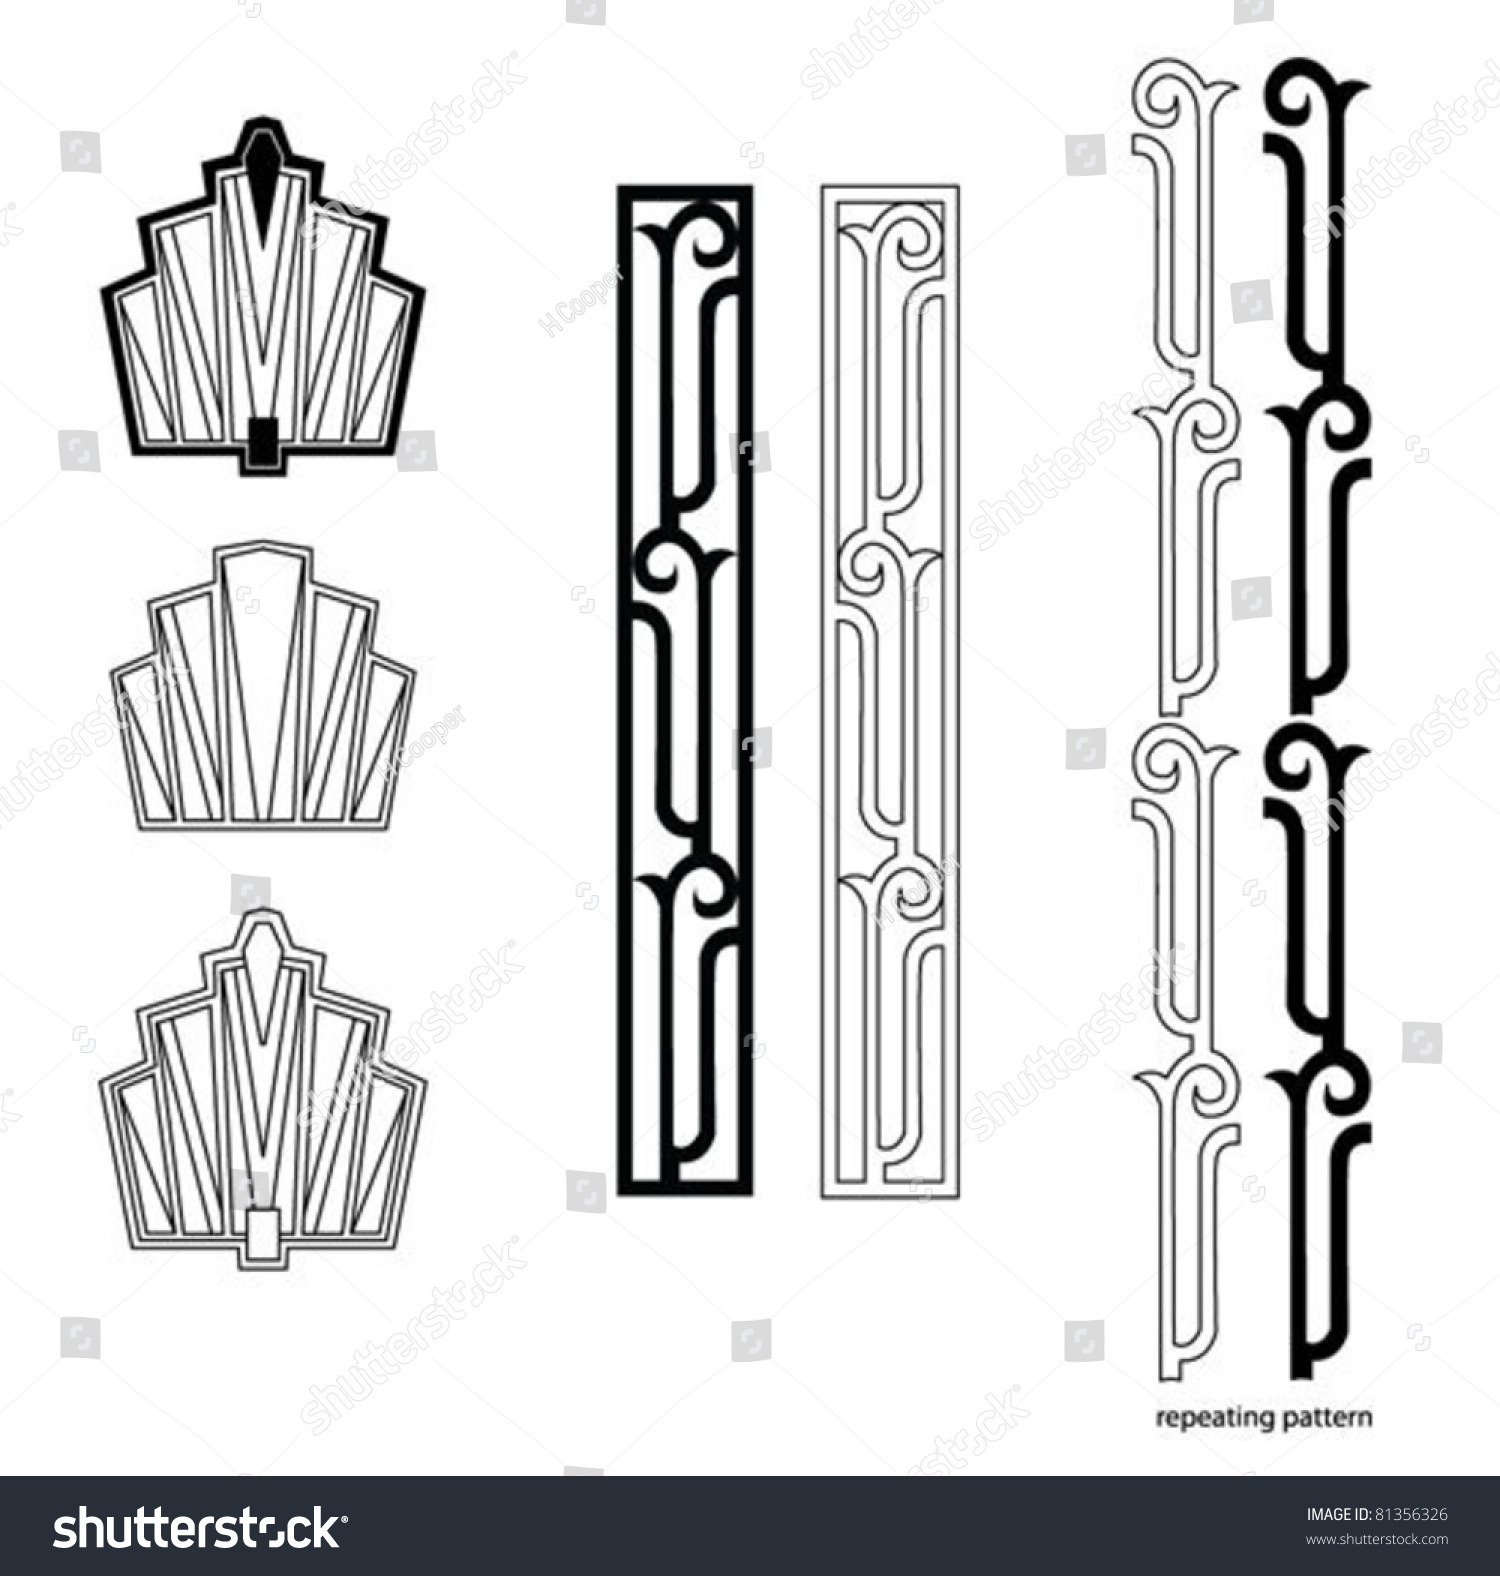 Art deco design elements stock vector 81356326 shutterstock for Art deco interior design elements